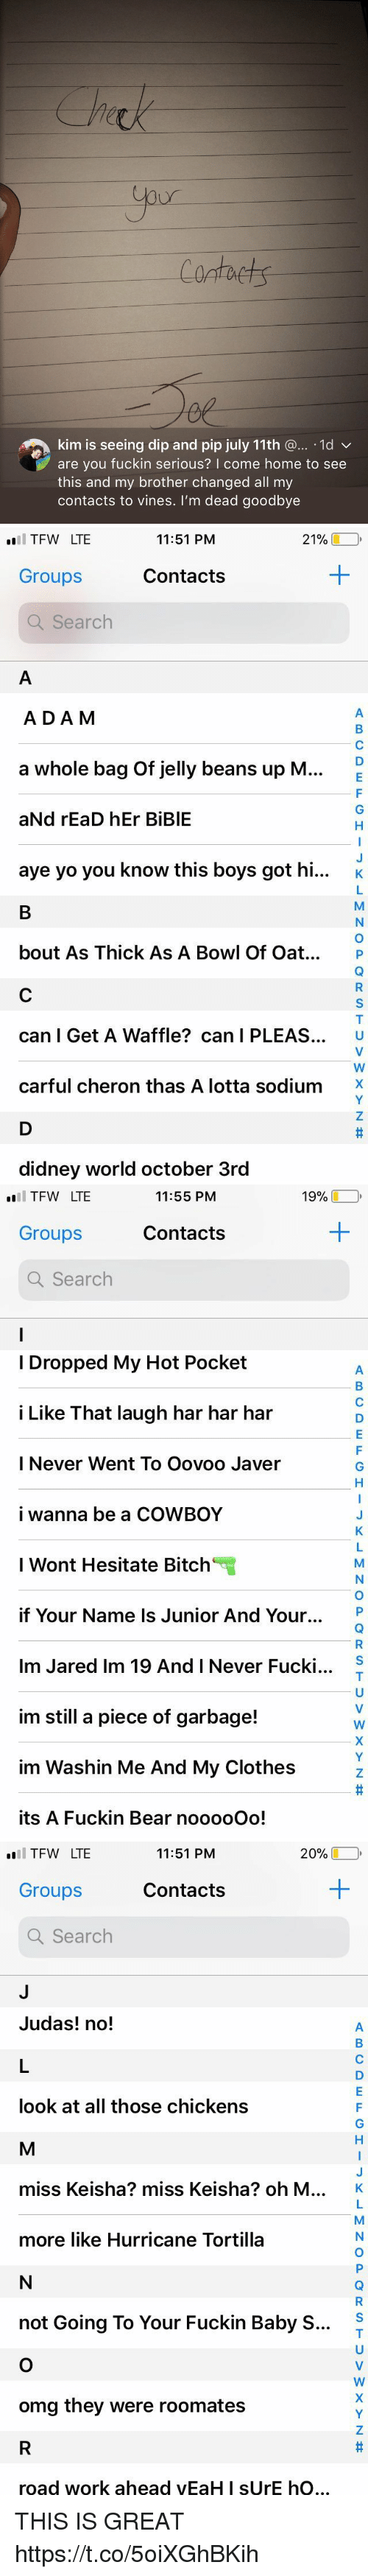 """M K: Contaets  kim is seeing dip and pip july 11th @... .1d v  are you fuckin serious? I come home to see  this and my brother changed all my  contacts to vines. I'm dead goodbye   TFW LTE  Groups  Q Search  11:51 PM  21%し  Contacts  ADA M  a whole bag of jelly beans up M  aNd rEaD hEr BiBlE  aye yo you know this boys got hi...  K  bout As Thick As A Bowl Of Oat. P  can I Get A Waffle? can I PLEAS. U  carful cheron thas A lotta sodium'X  didney world october 3rd   19%-,  l TFW LTE  Groups  Q Search  11:55 PM  Contacts  I Dropped My Hot Pocket  i Like That laugh har har har  I Never Went To Oovoo Javer  i wanna be a COWBOY  I Wont Hesitate Bitch""""  if Your Name Is Junior And Your.  Im Jared Im 19 And I Never Fucki  im still a piece of garbage!  im Washin Me And My Clothes  its A Fuckin Bear nooooOo!  S   20% □  l TFW LTE  Groups  Q Search  11:51 PM  Contacts  Judas! no!  look at all those chickens  miss Keisha? miss Keisha? oh M  K  more like Hurricane Tortilla  S  not Going To Your Fuckin Baby S...  omg they were roomates  ro  ad work ahead yEaH I sUrE  hO THIS IS GREAT https://t.co/5oiXGhBKih"""